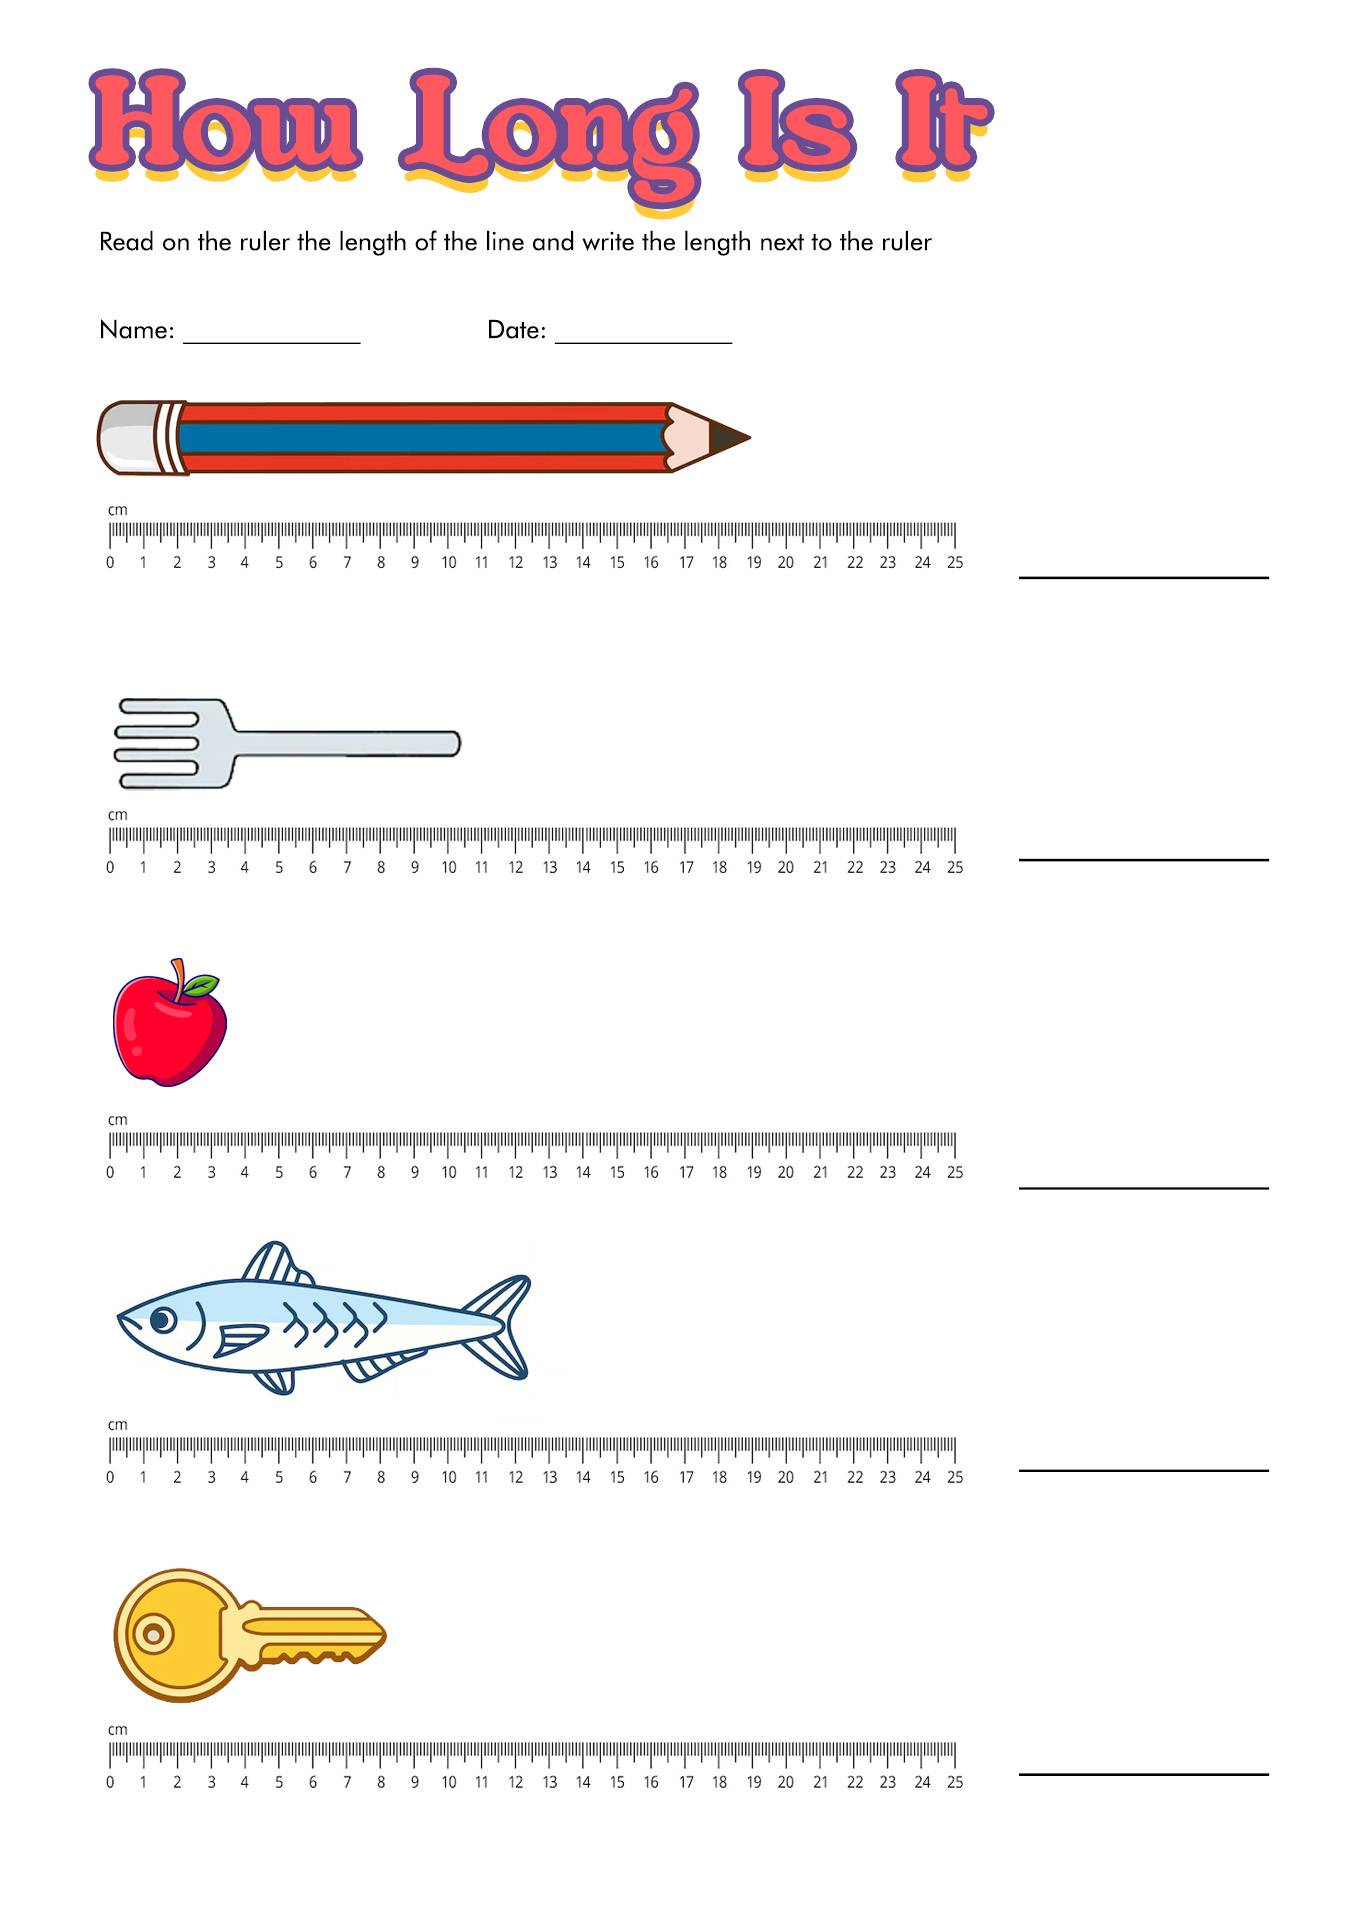 hight resolution of Measurement Worksheet With Ruler   Printable Worksheets and Activities for  Teachers